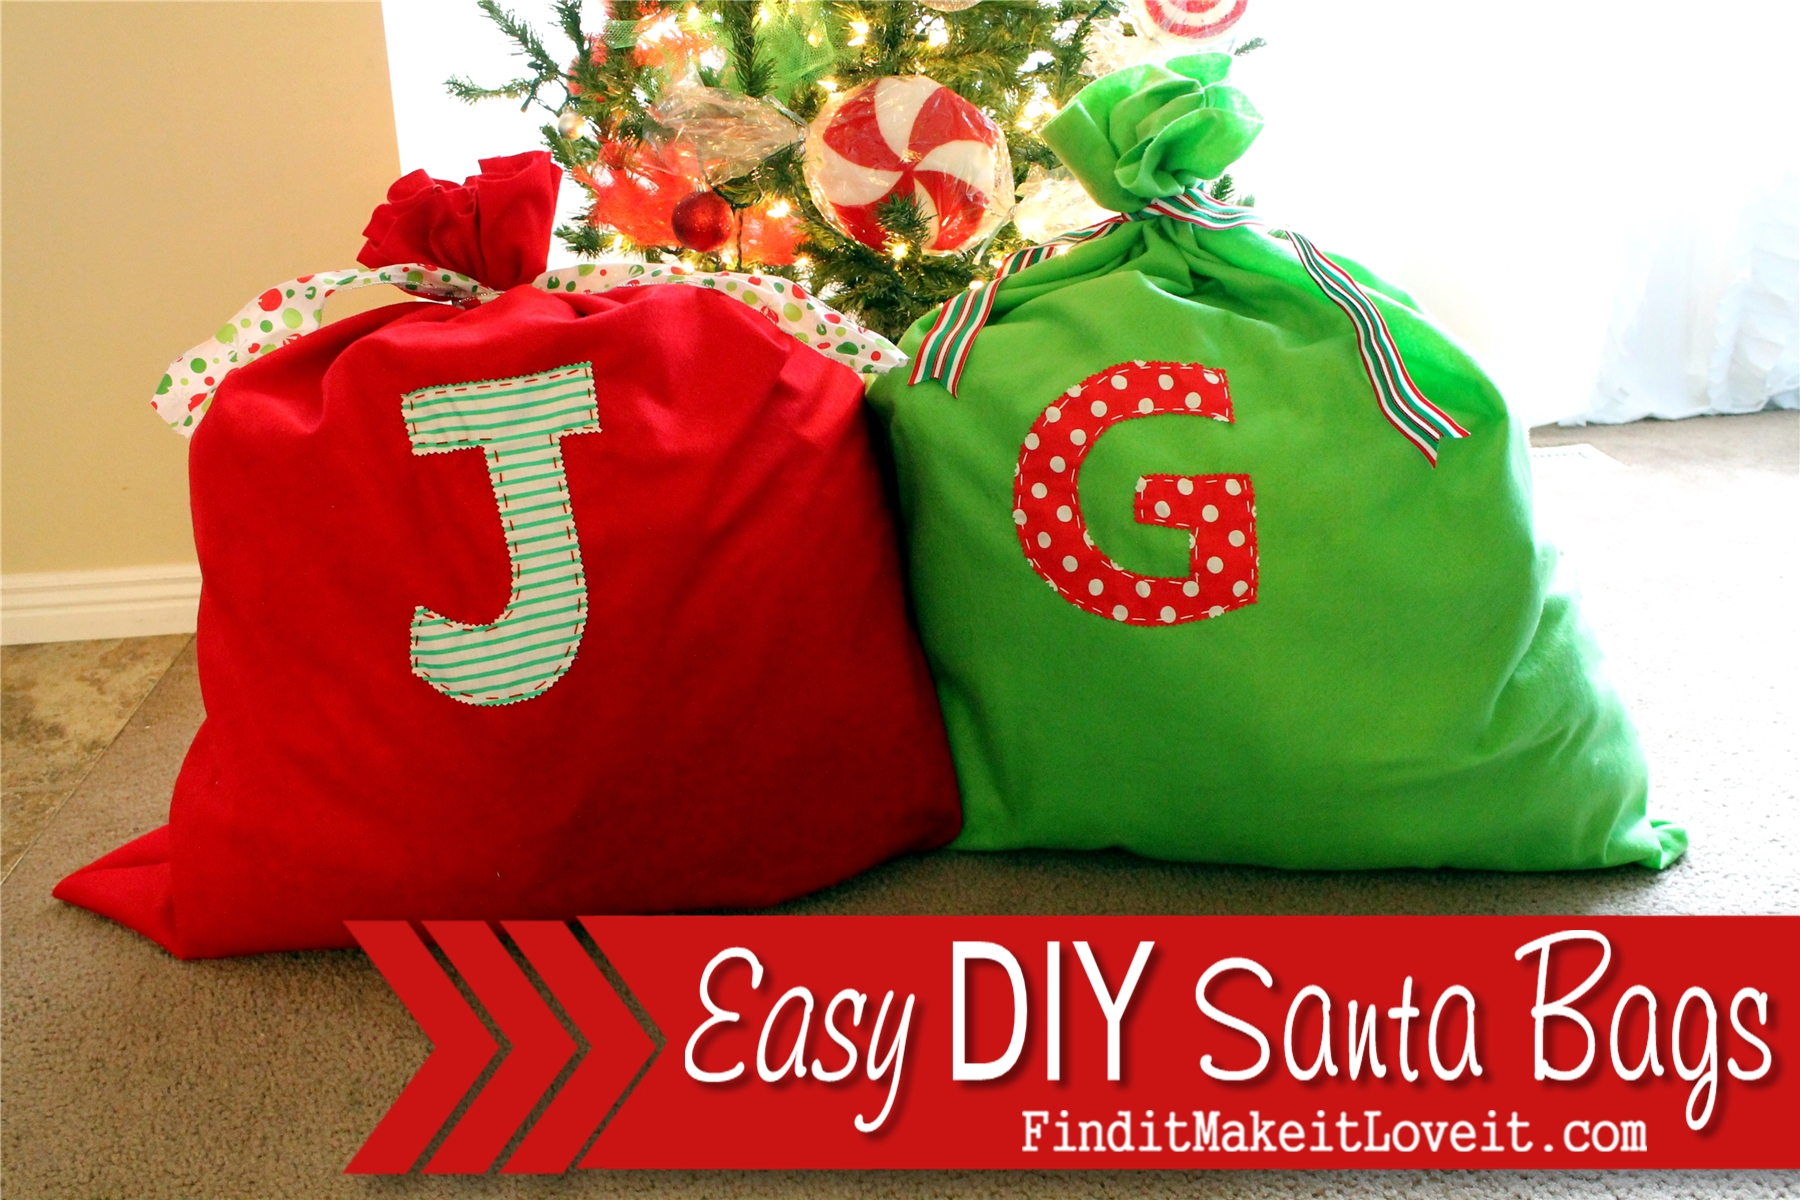 Easy Diy Santa Bag